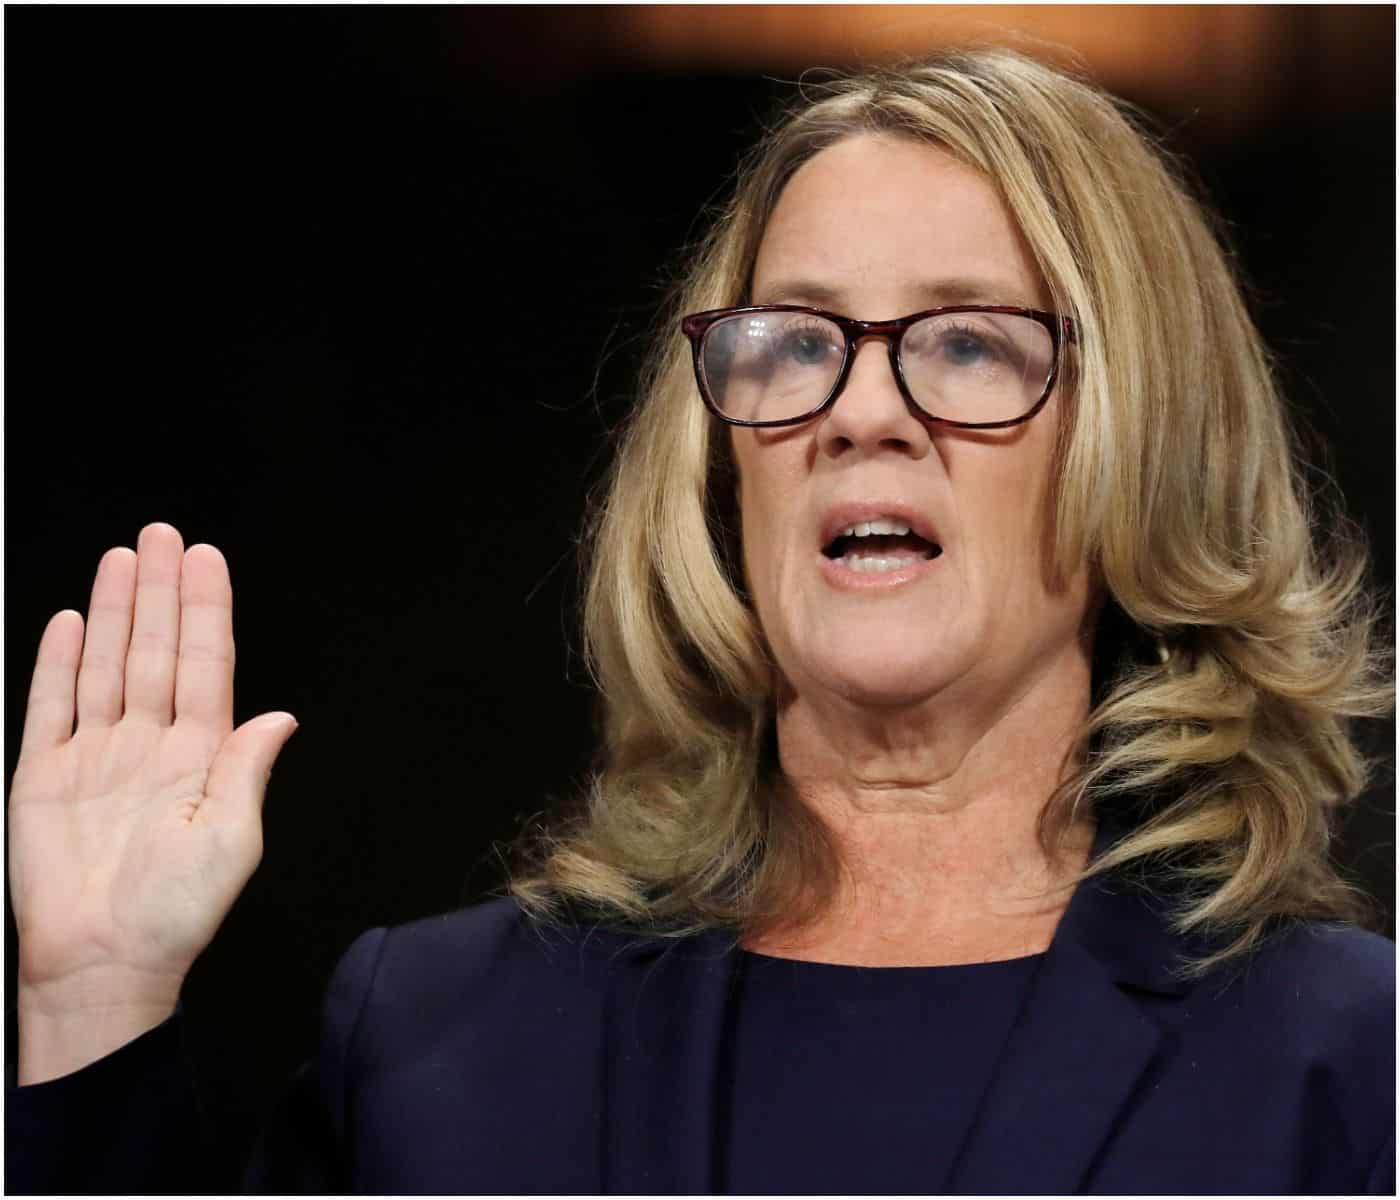 what is the net worth of Christine Blasey Ford